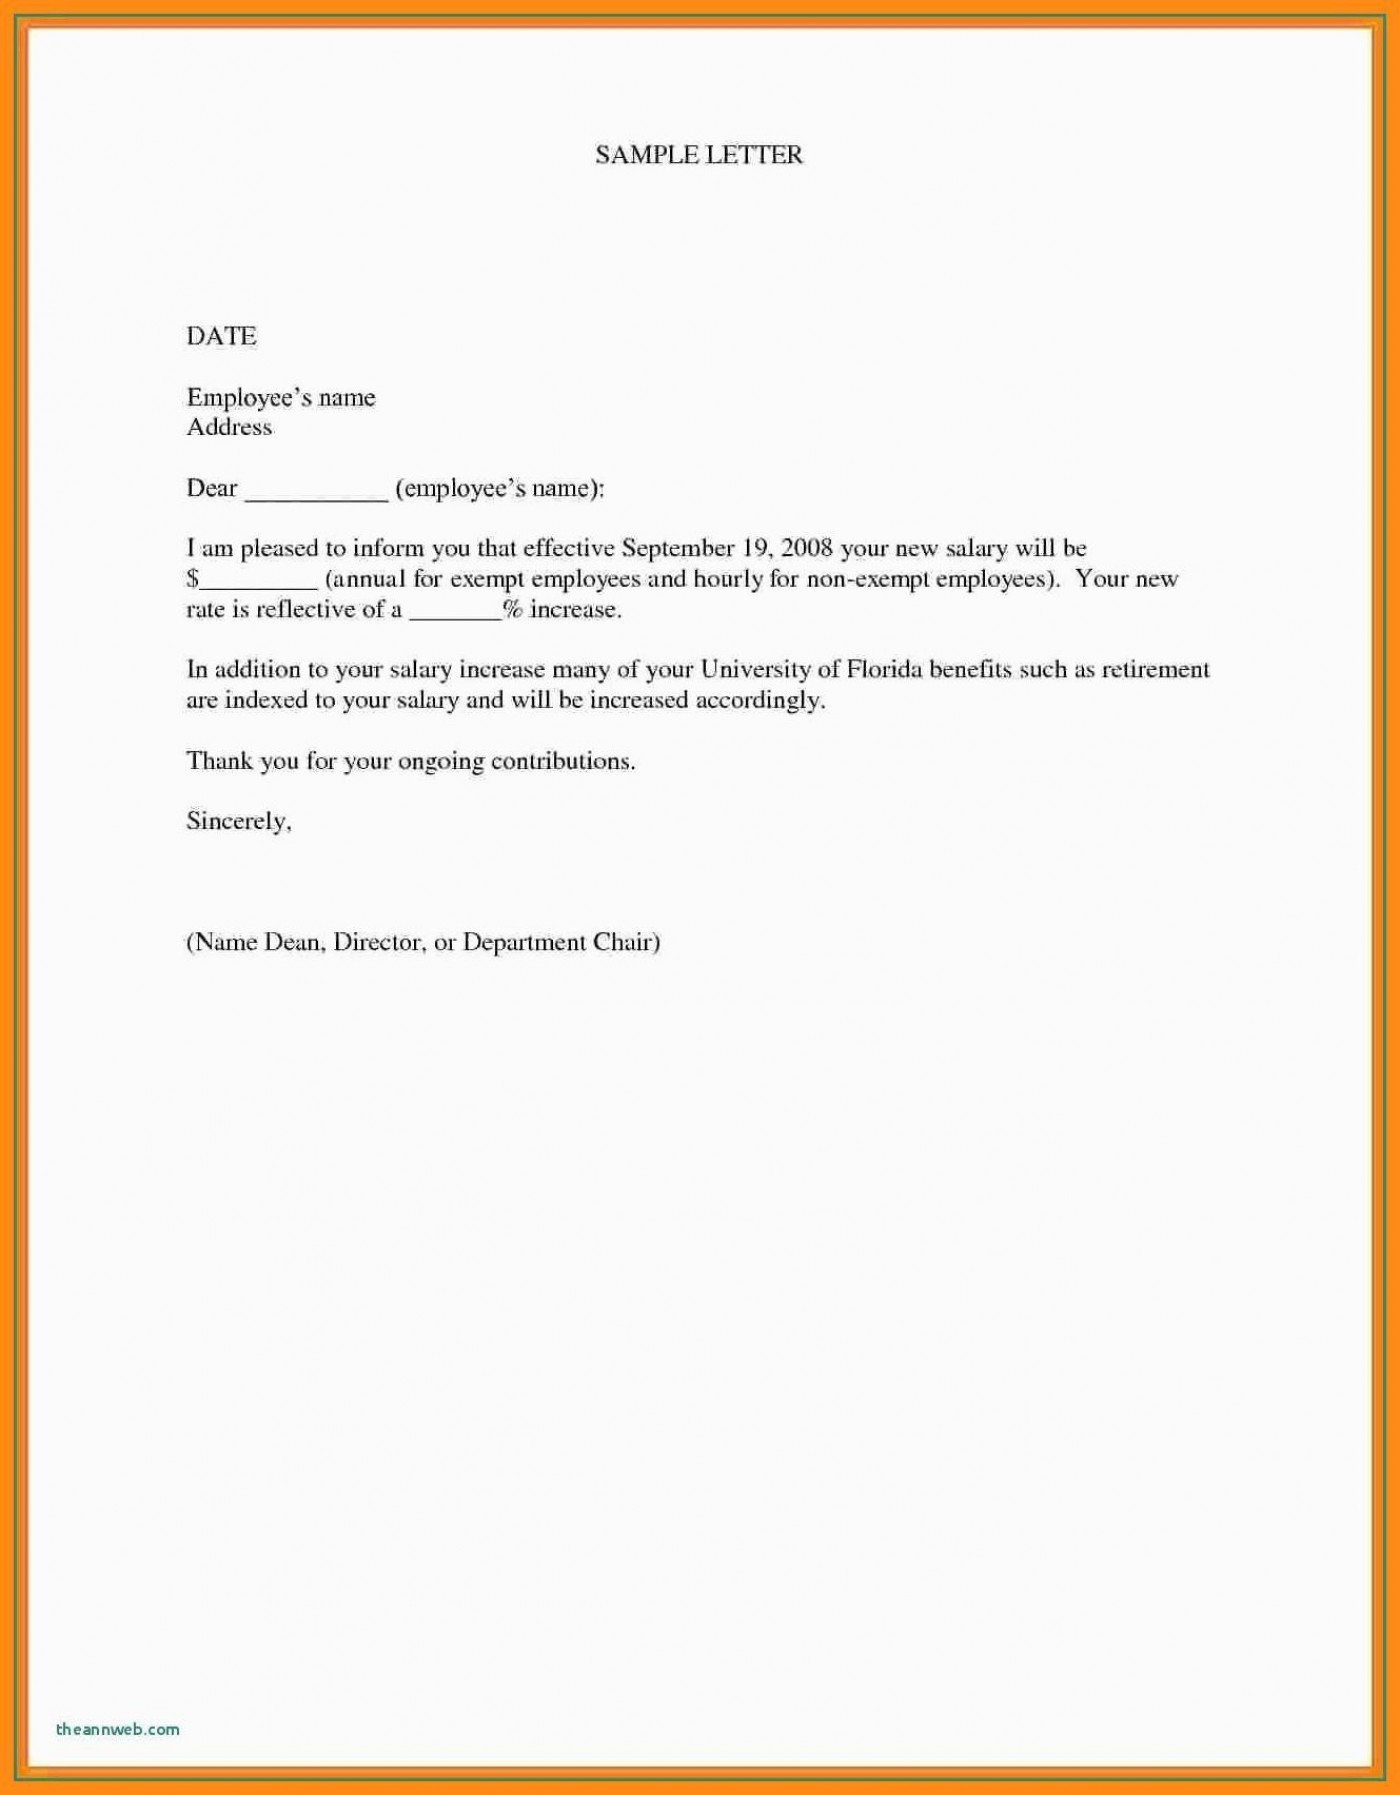 000 Marvelou Salary Increase Letter Template Design  From Employer To Employee Australia No For1400